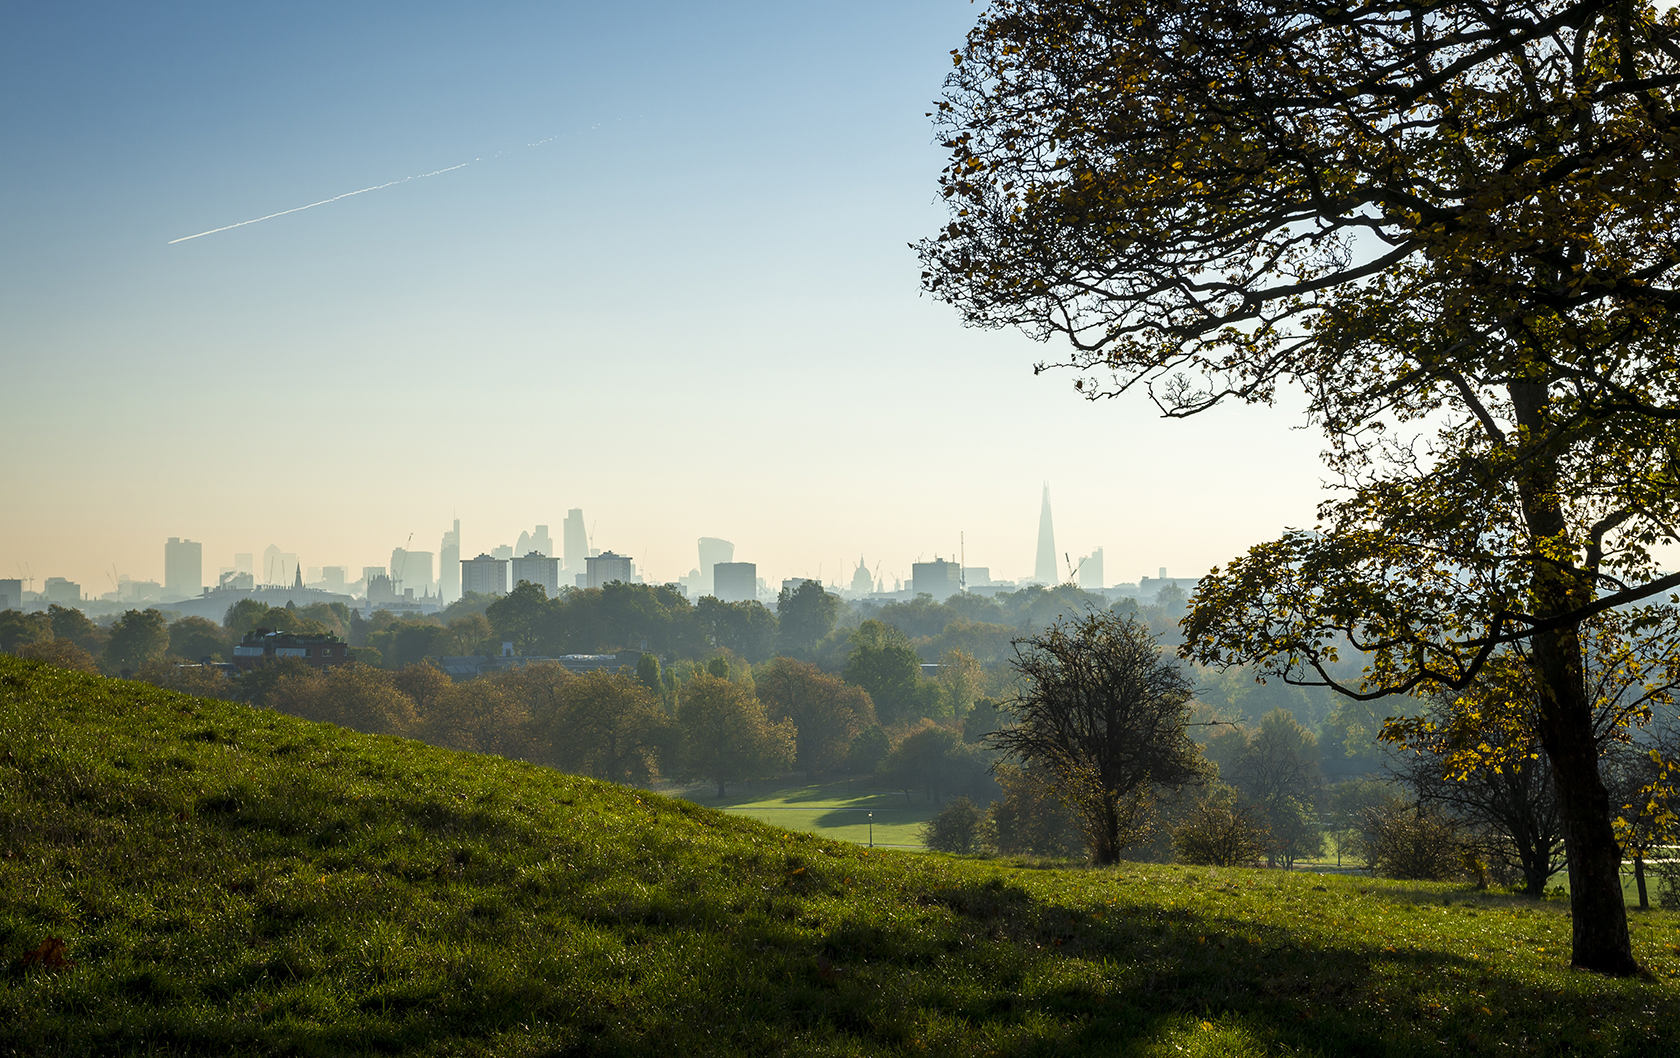 Beautiful view of London's skyline from Primrose Hill